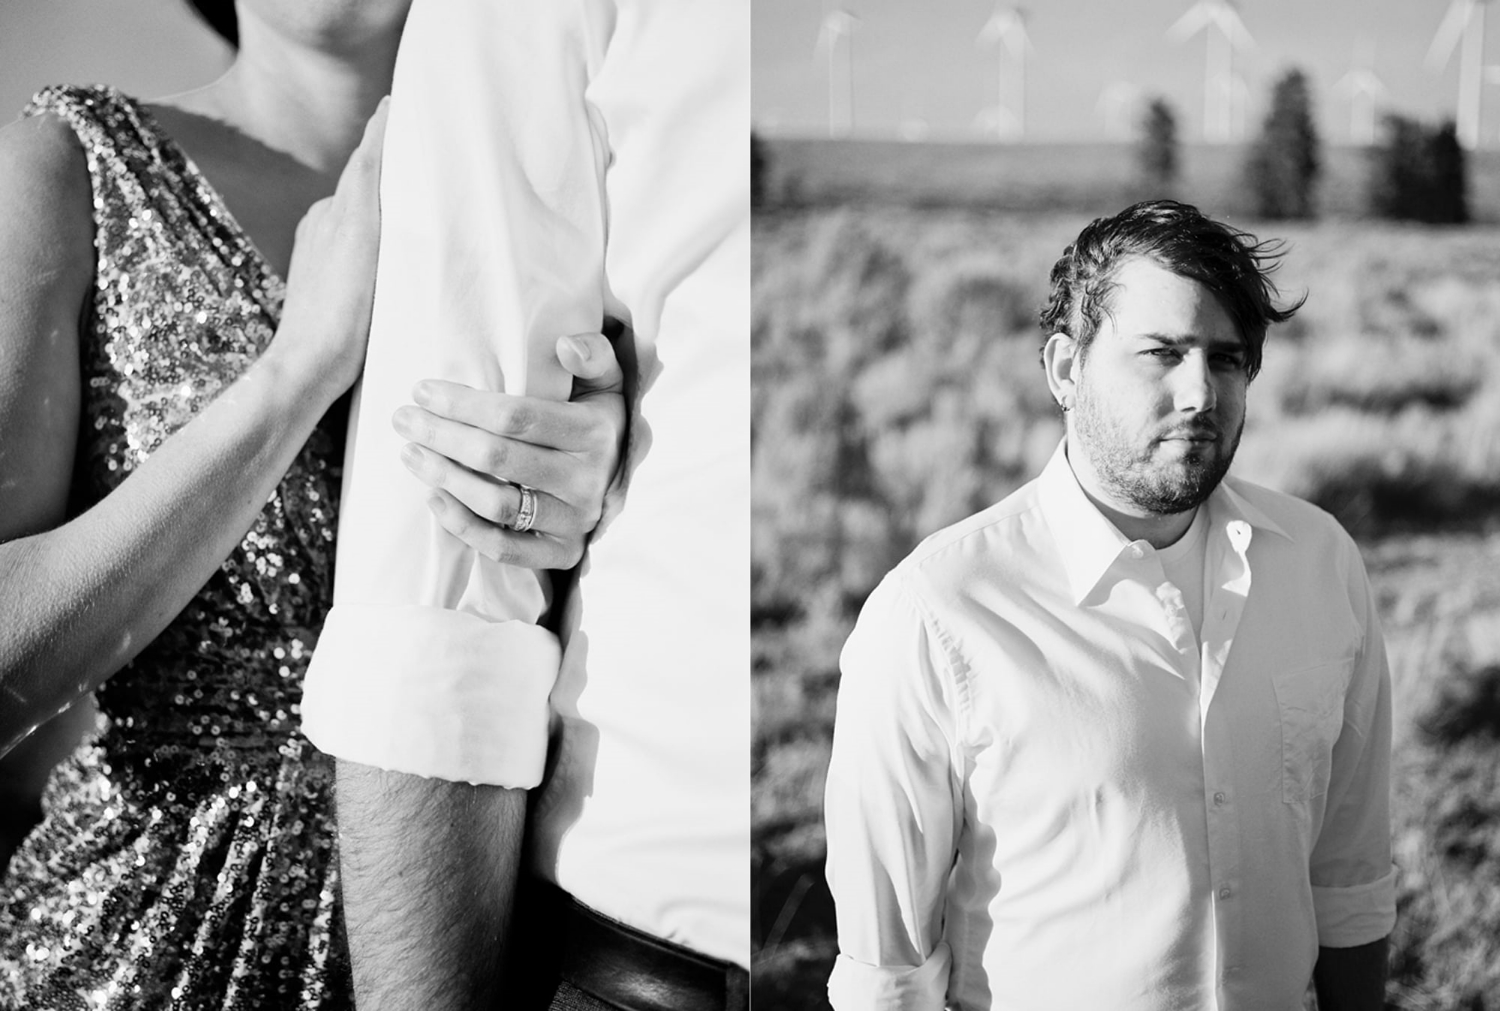 Couples Portraits with a Badgley Mischka gown at Wild Horse Wind Farm in Eastern Washington.